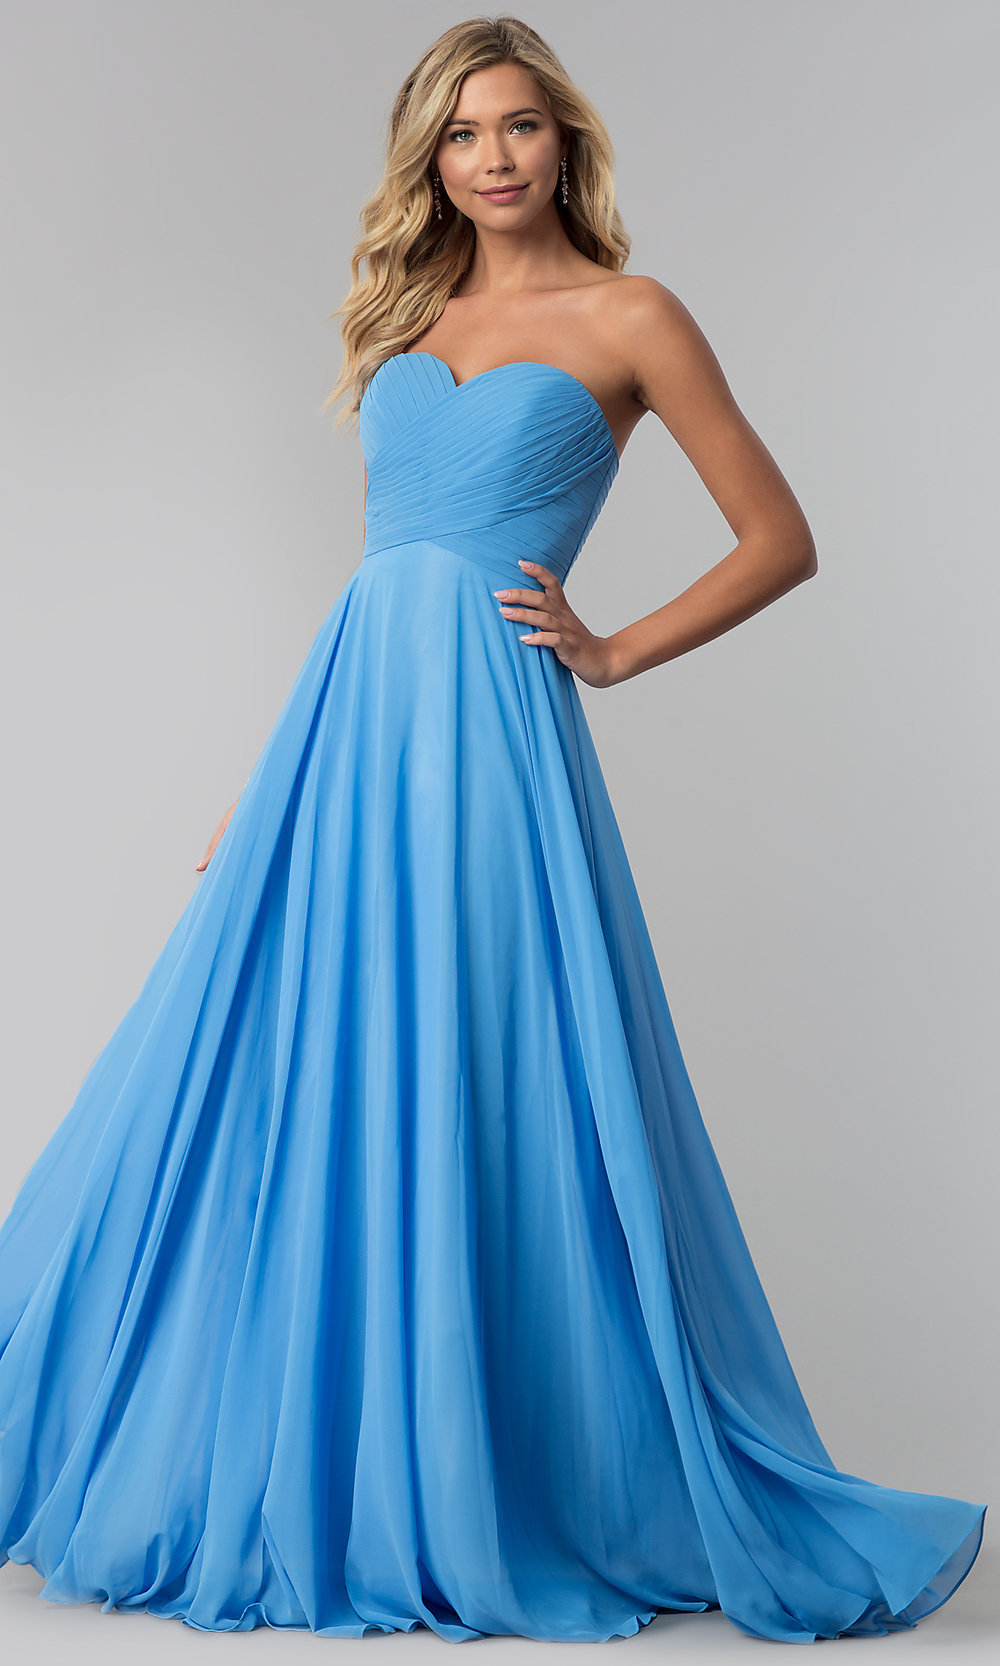 Cheap Satin Long Prom Dress with Corset Back -PromGirl